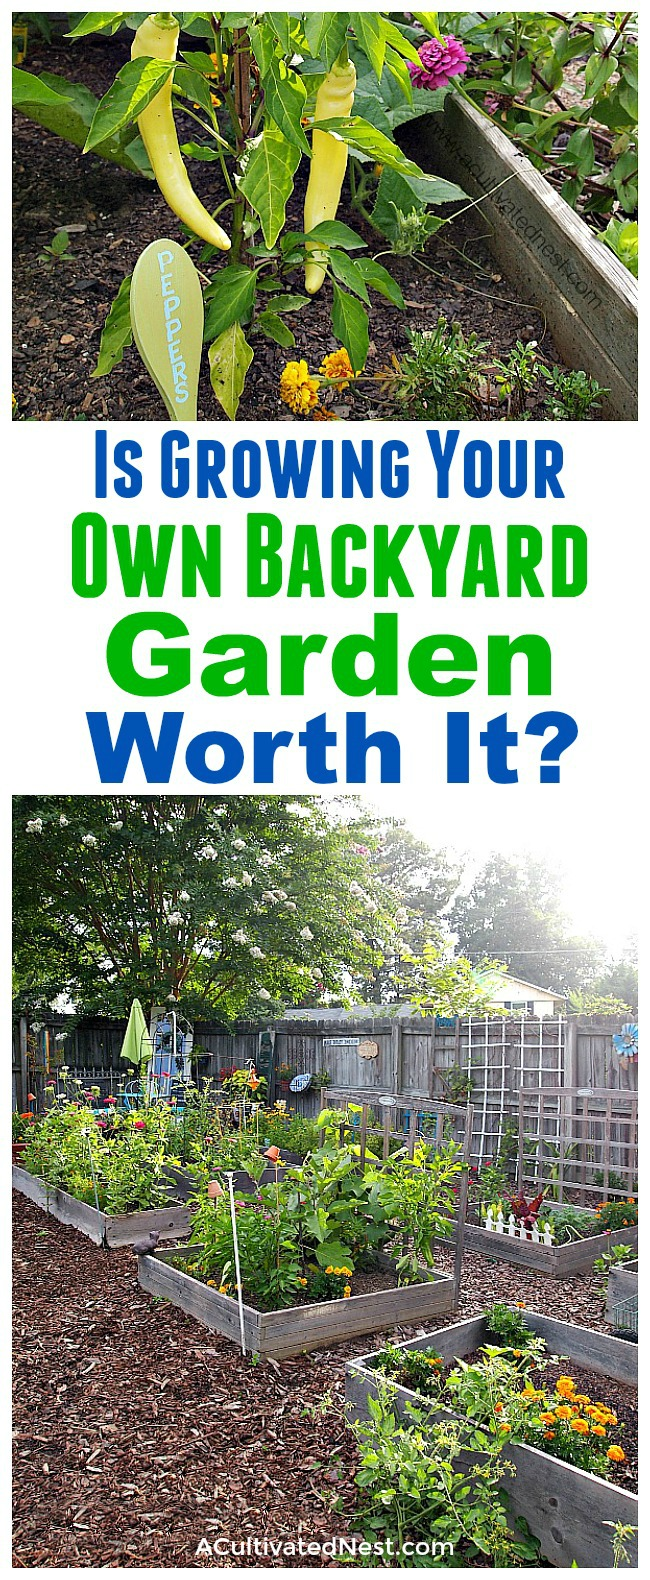 Is Growing Your Own Backyard Garden Worth It?- Gardening is a great way to grow your own all-natural food. But is it worth the money and time? I cover the expenses and benefits of growing your own backyard garden, and share my handy tips for how to start a garden the frugal way! | ways to save money on your garden, how to start a garden for cheap, frugal gardening tips, gardening pros and cons #gardening #growYourOwn #vegetableGardening #backyardGarden